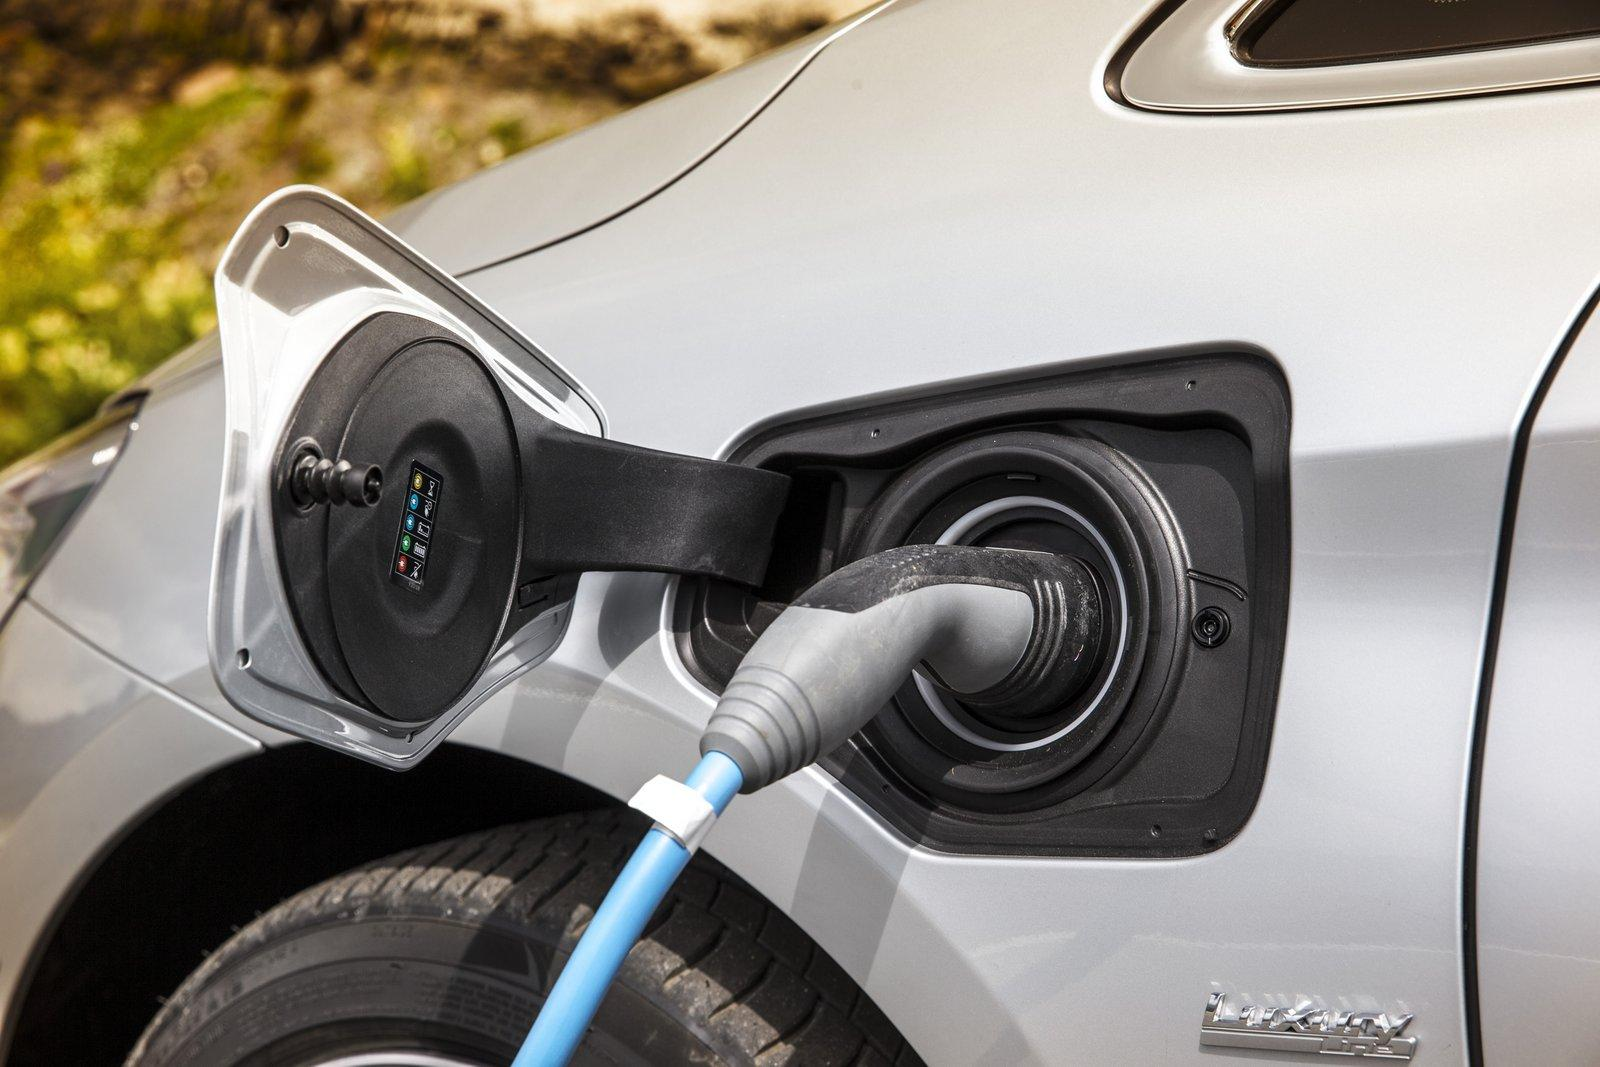 2015 BMW 225xe PHEV Active Tourer charging port unveiled